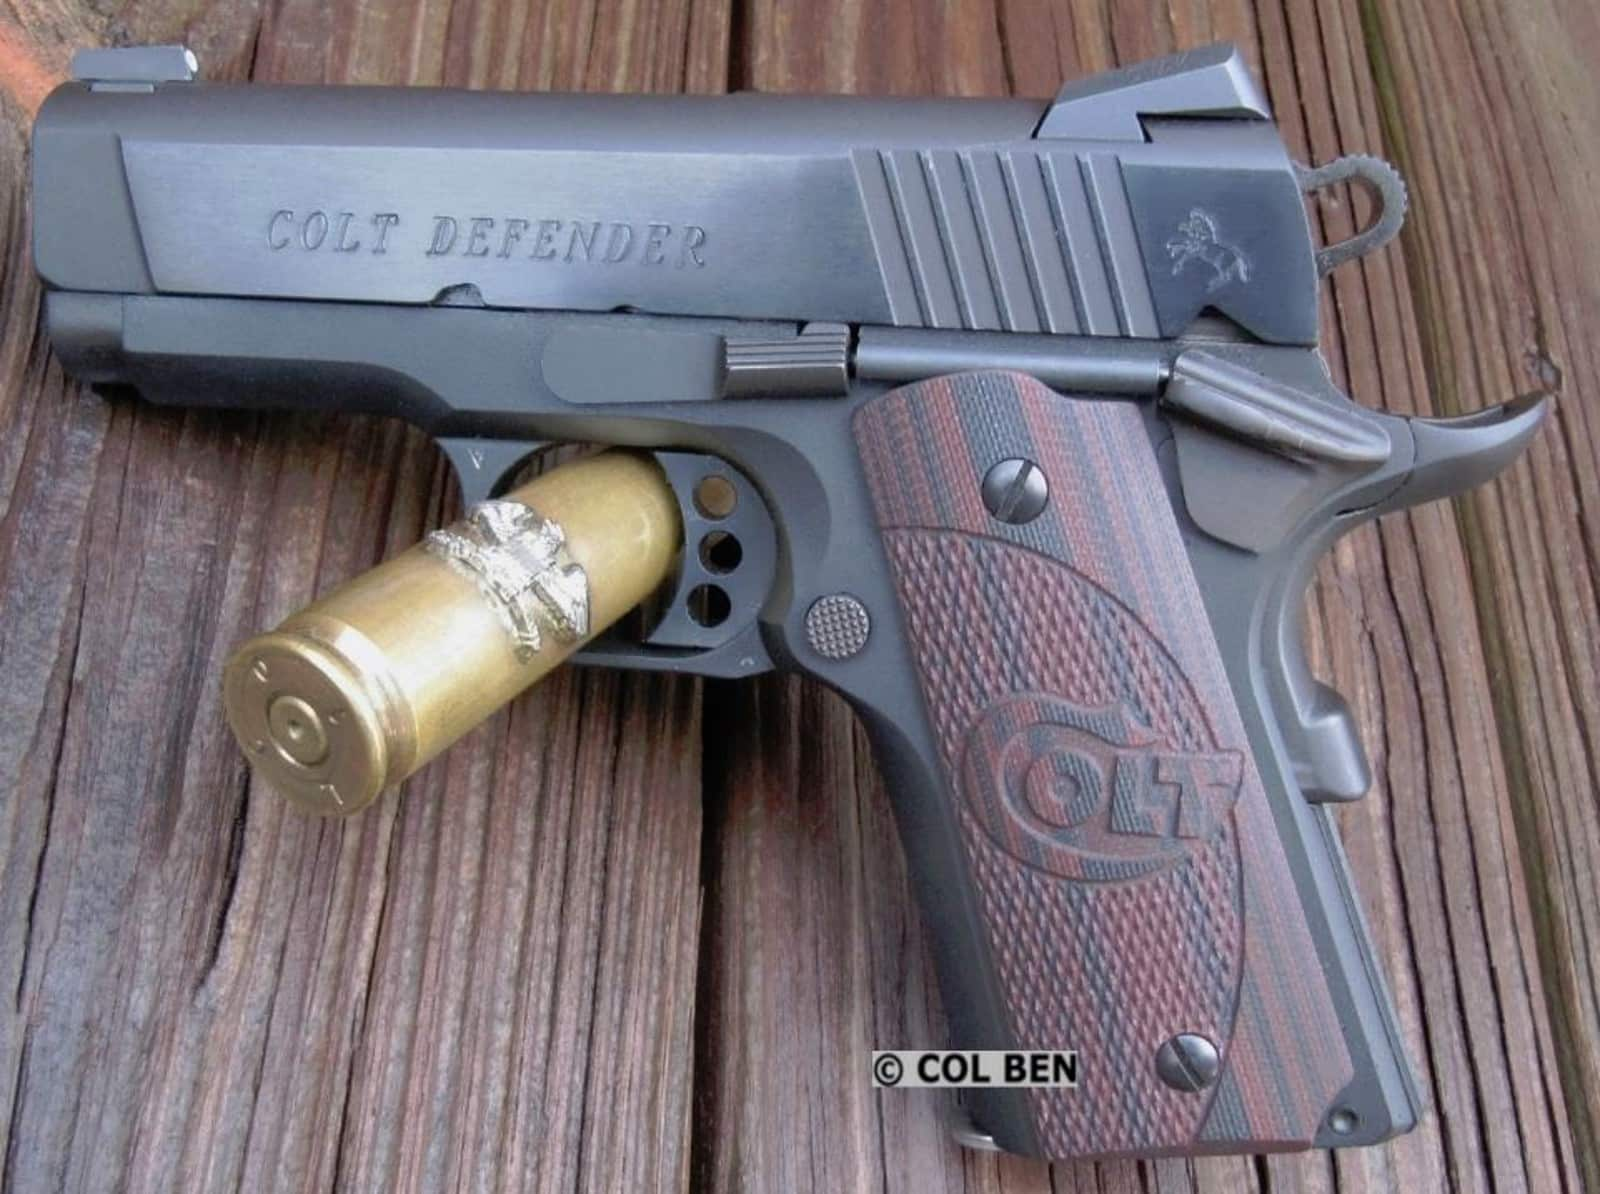 Top Performing & Concealable 1911 Sub-Compact 9mm Pistols